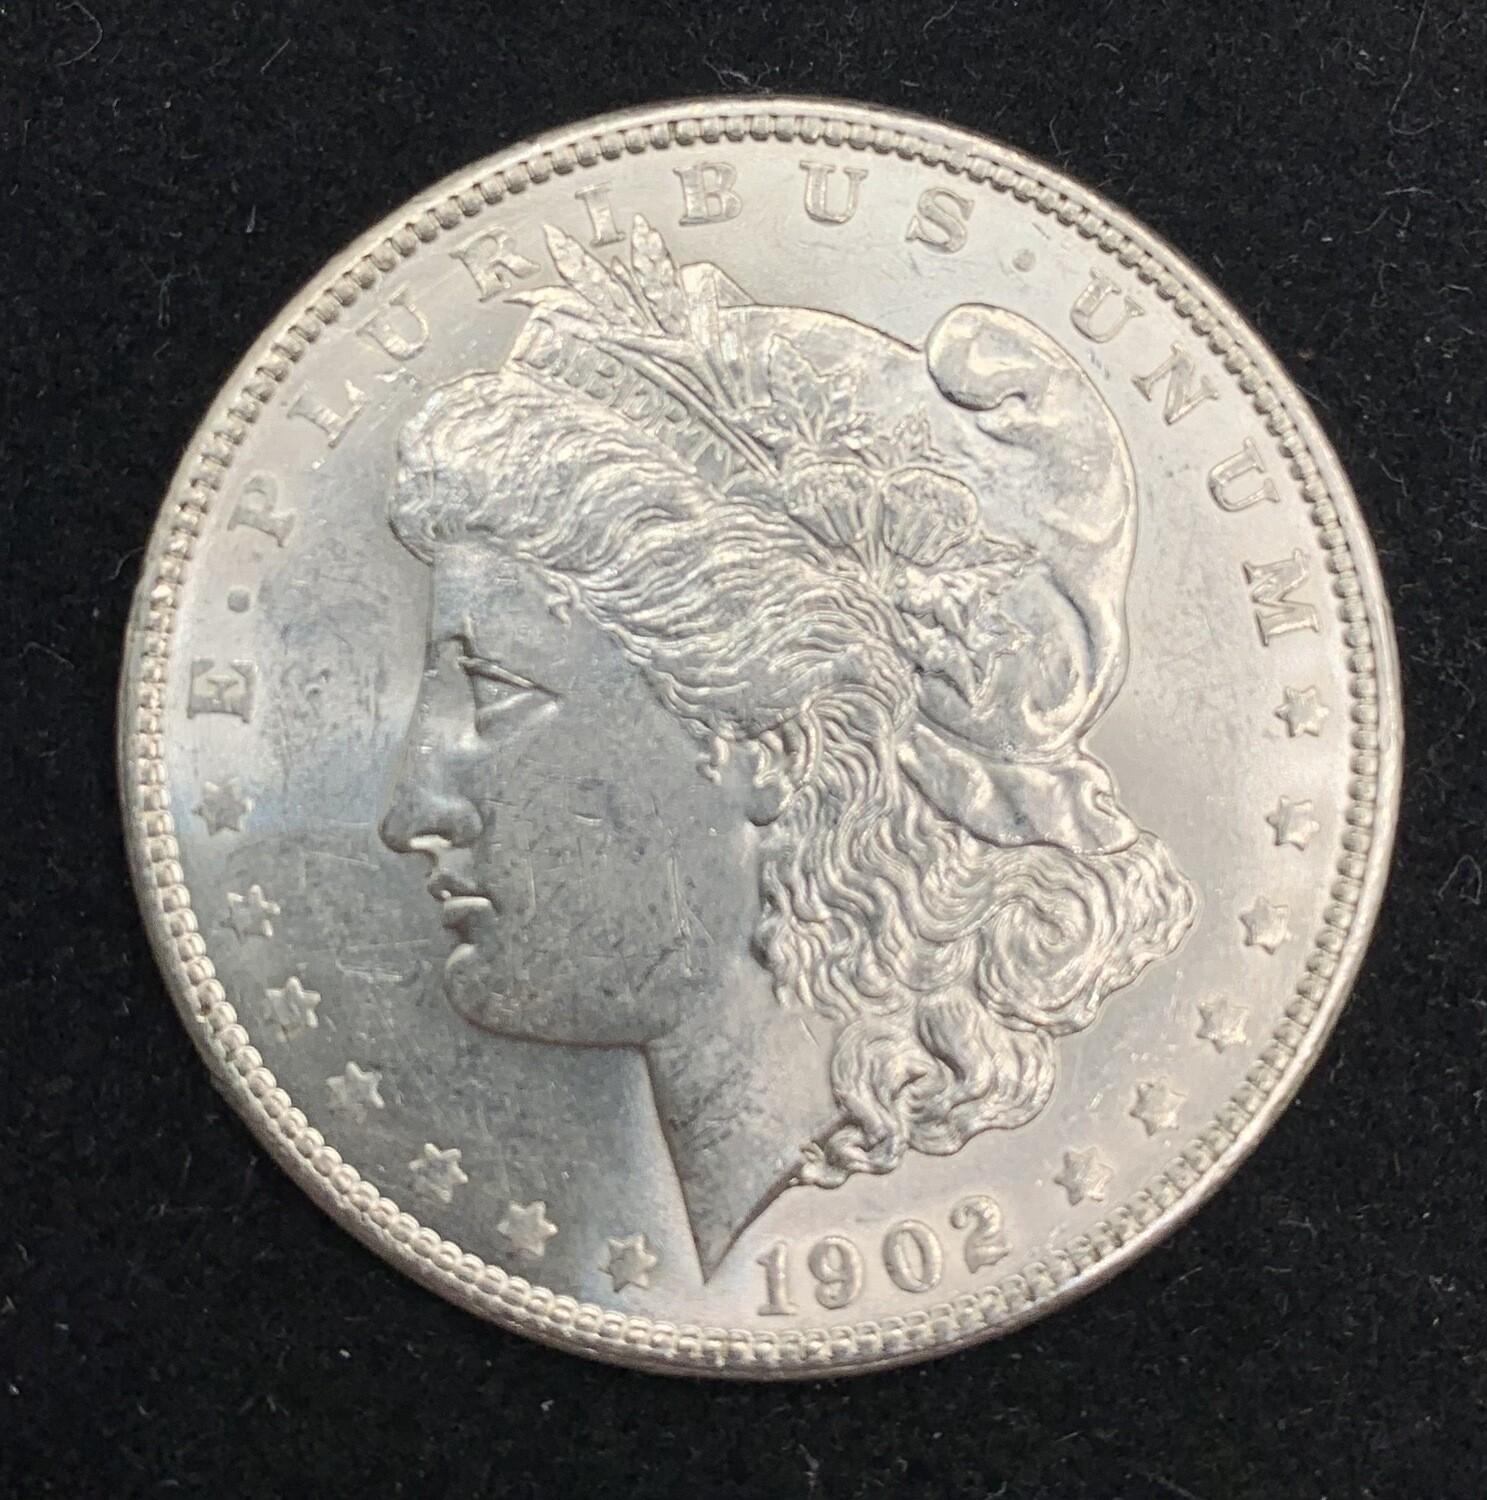 1902 Morgan Silver Dollar - Philadelphia Mint